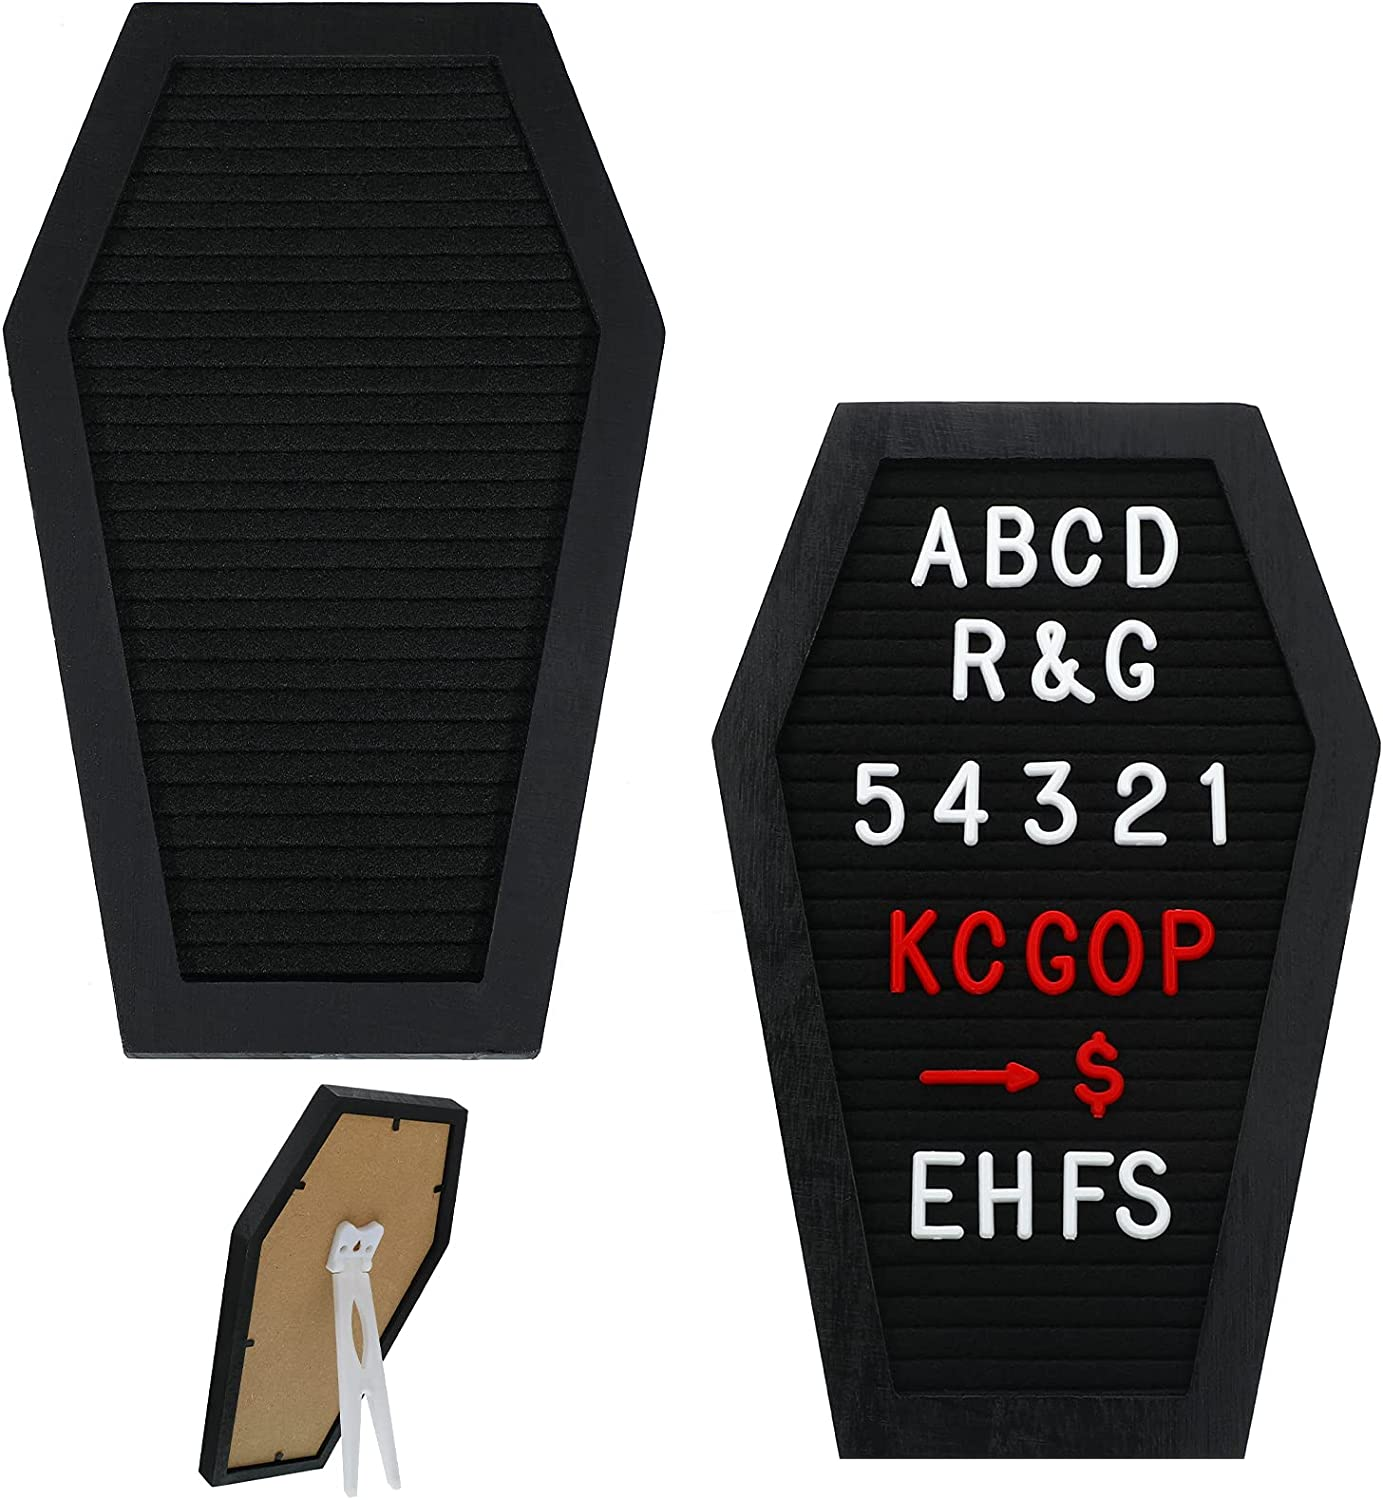 Qeeenar 2 Pieces Black Felt Letter Special price for a limited time Coffin Challenge the lowest price Board Changeable